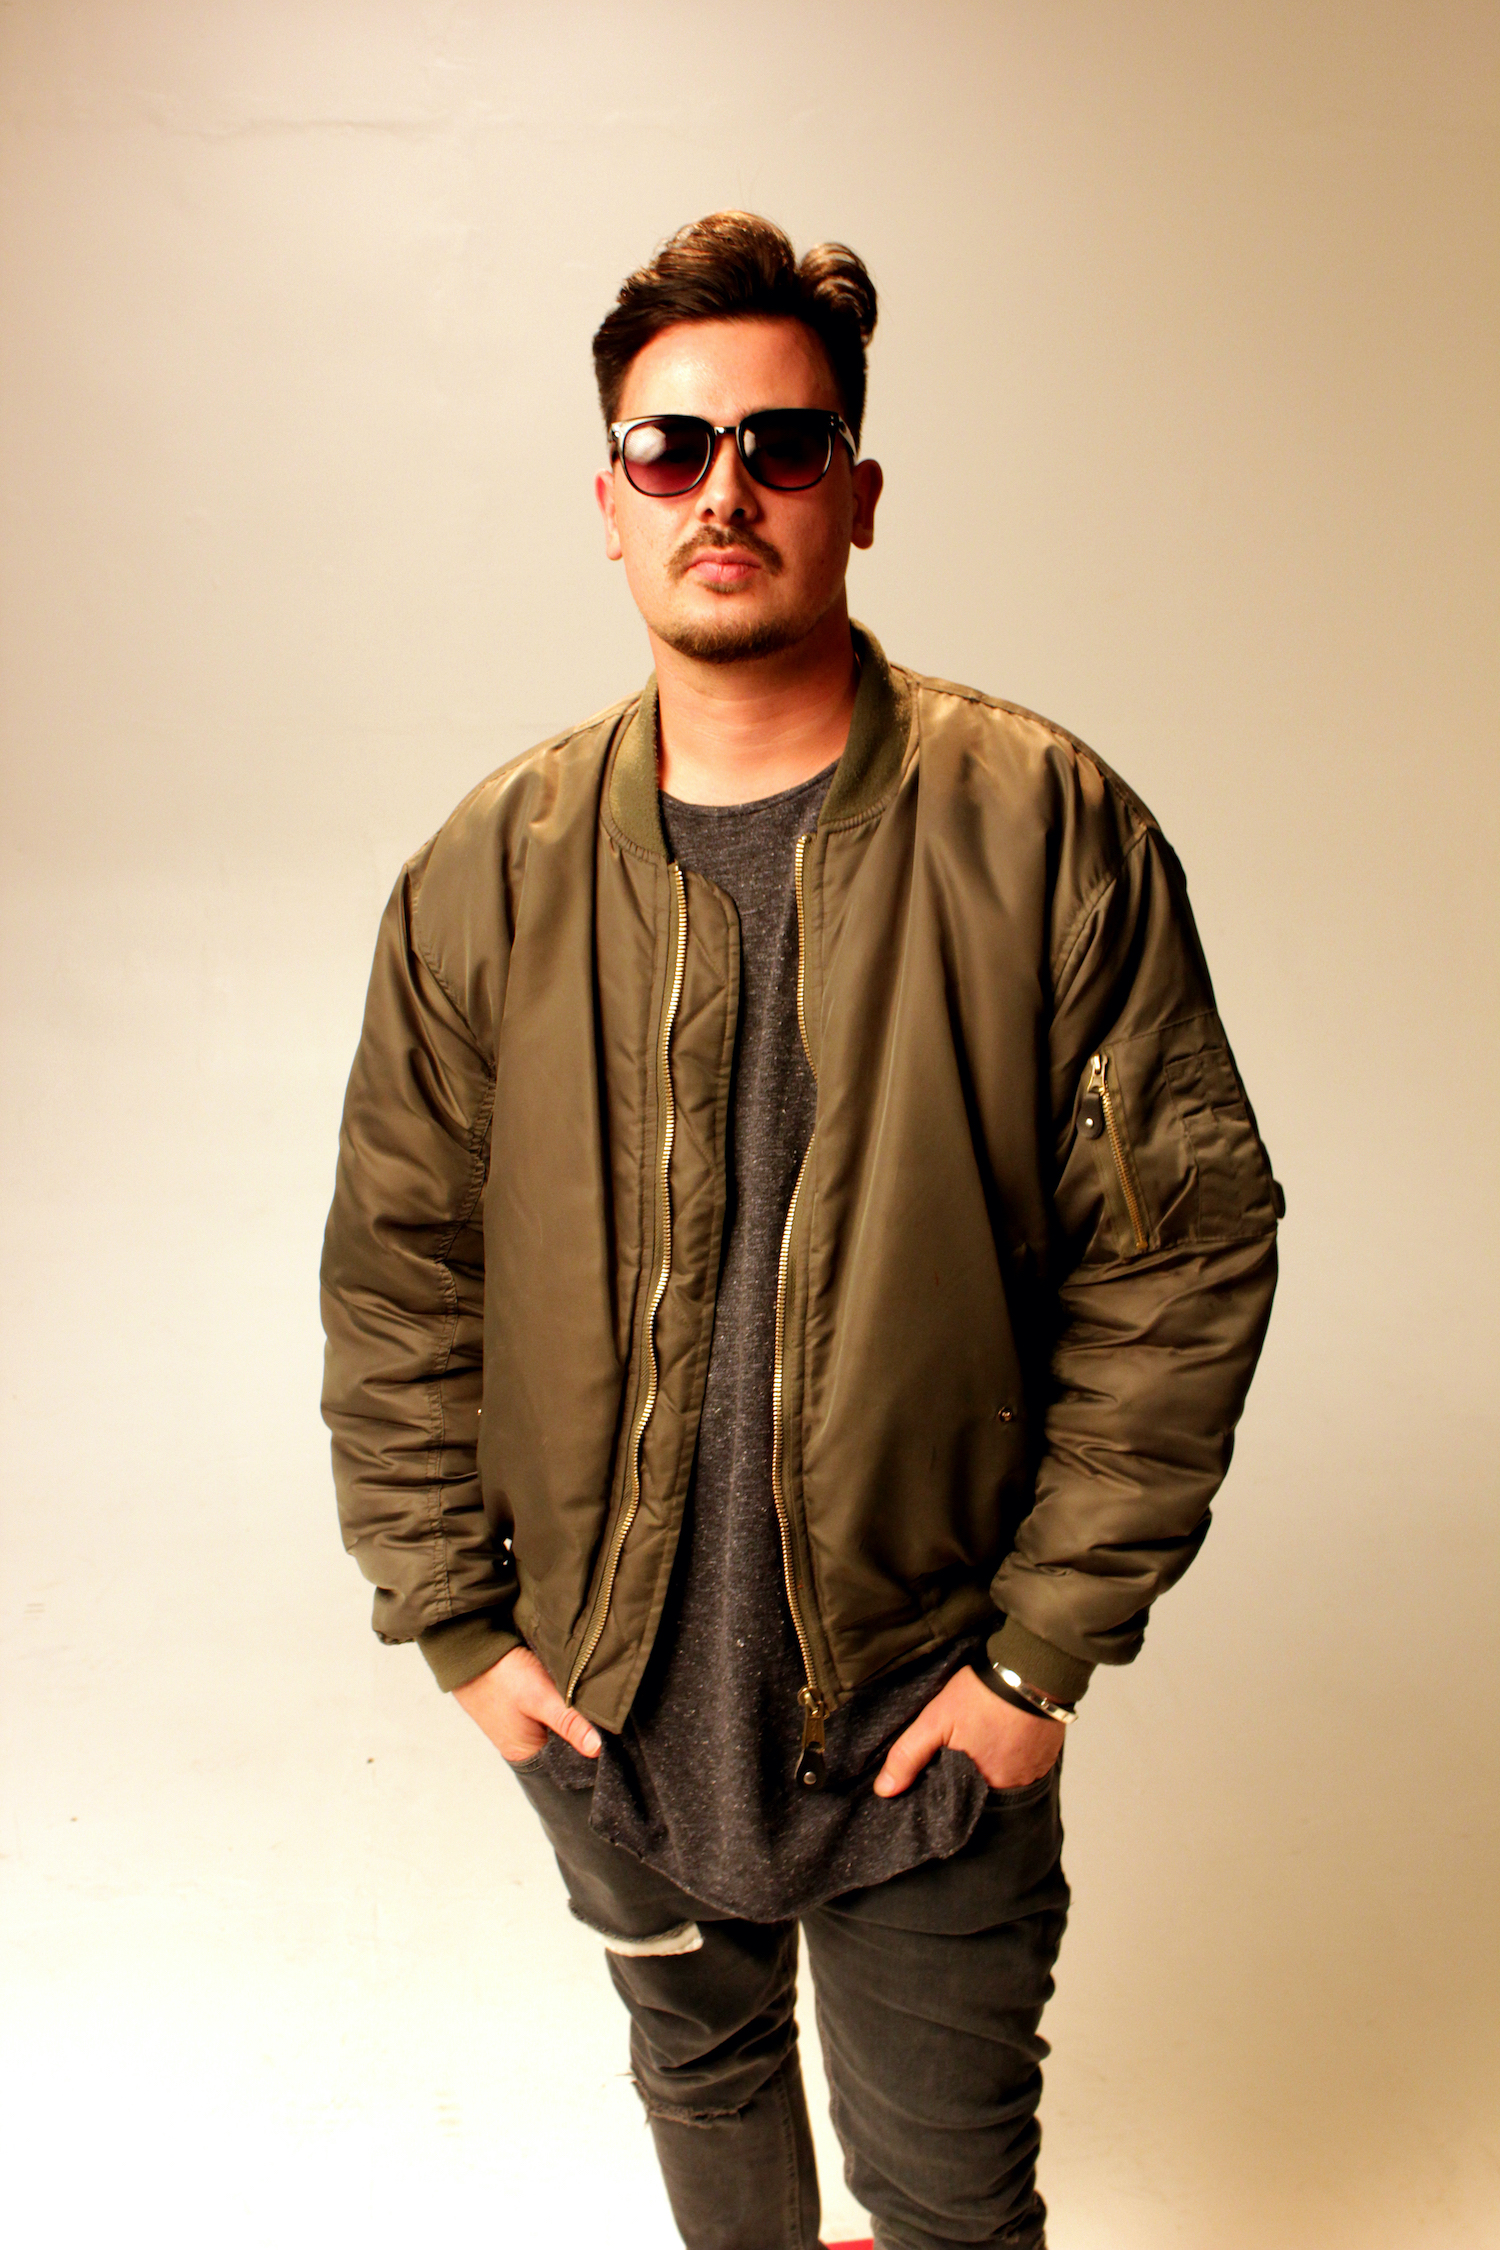 Professional Photography White Man In Green Jacket And Moustache Standing On White Studio Backdrop